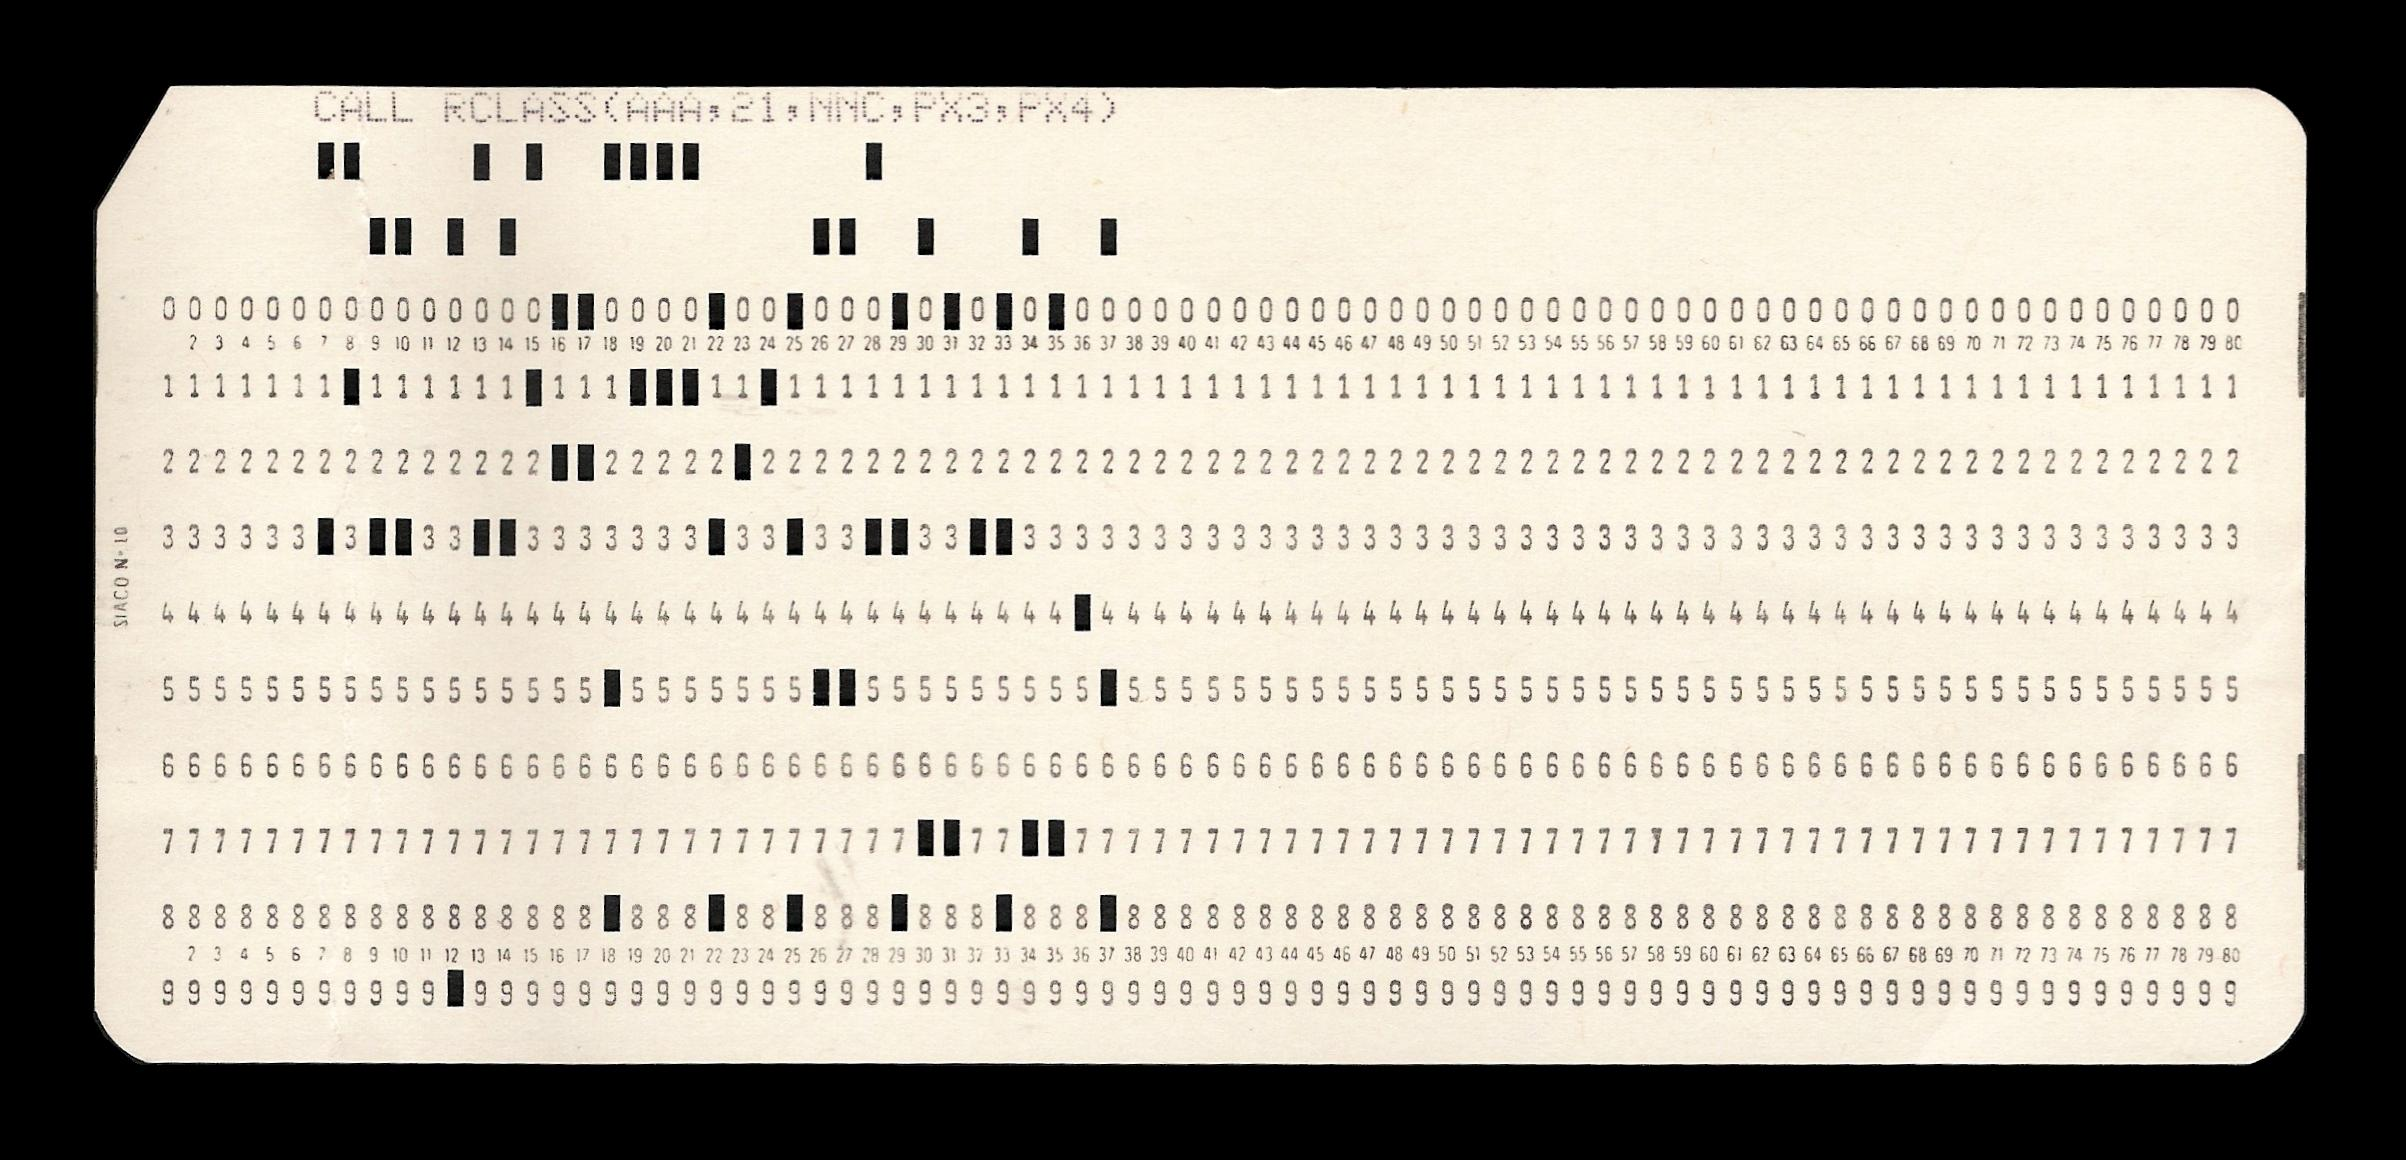 http://upload.wikimedia.org/wikipedia/commons/f/f3/Punched_card.jpg